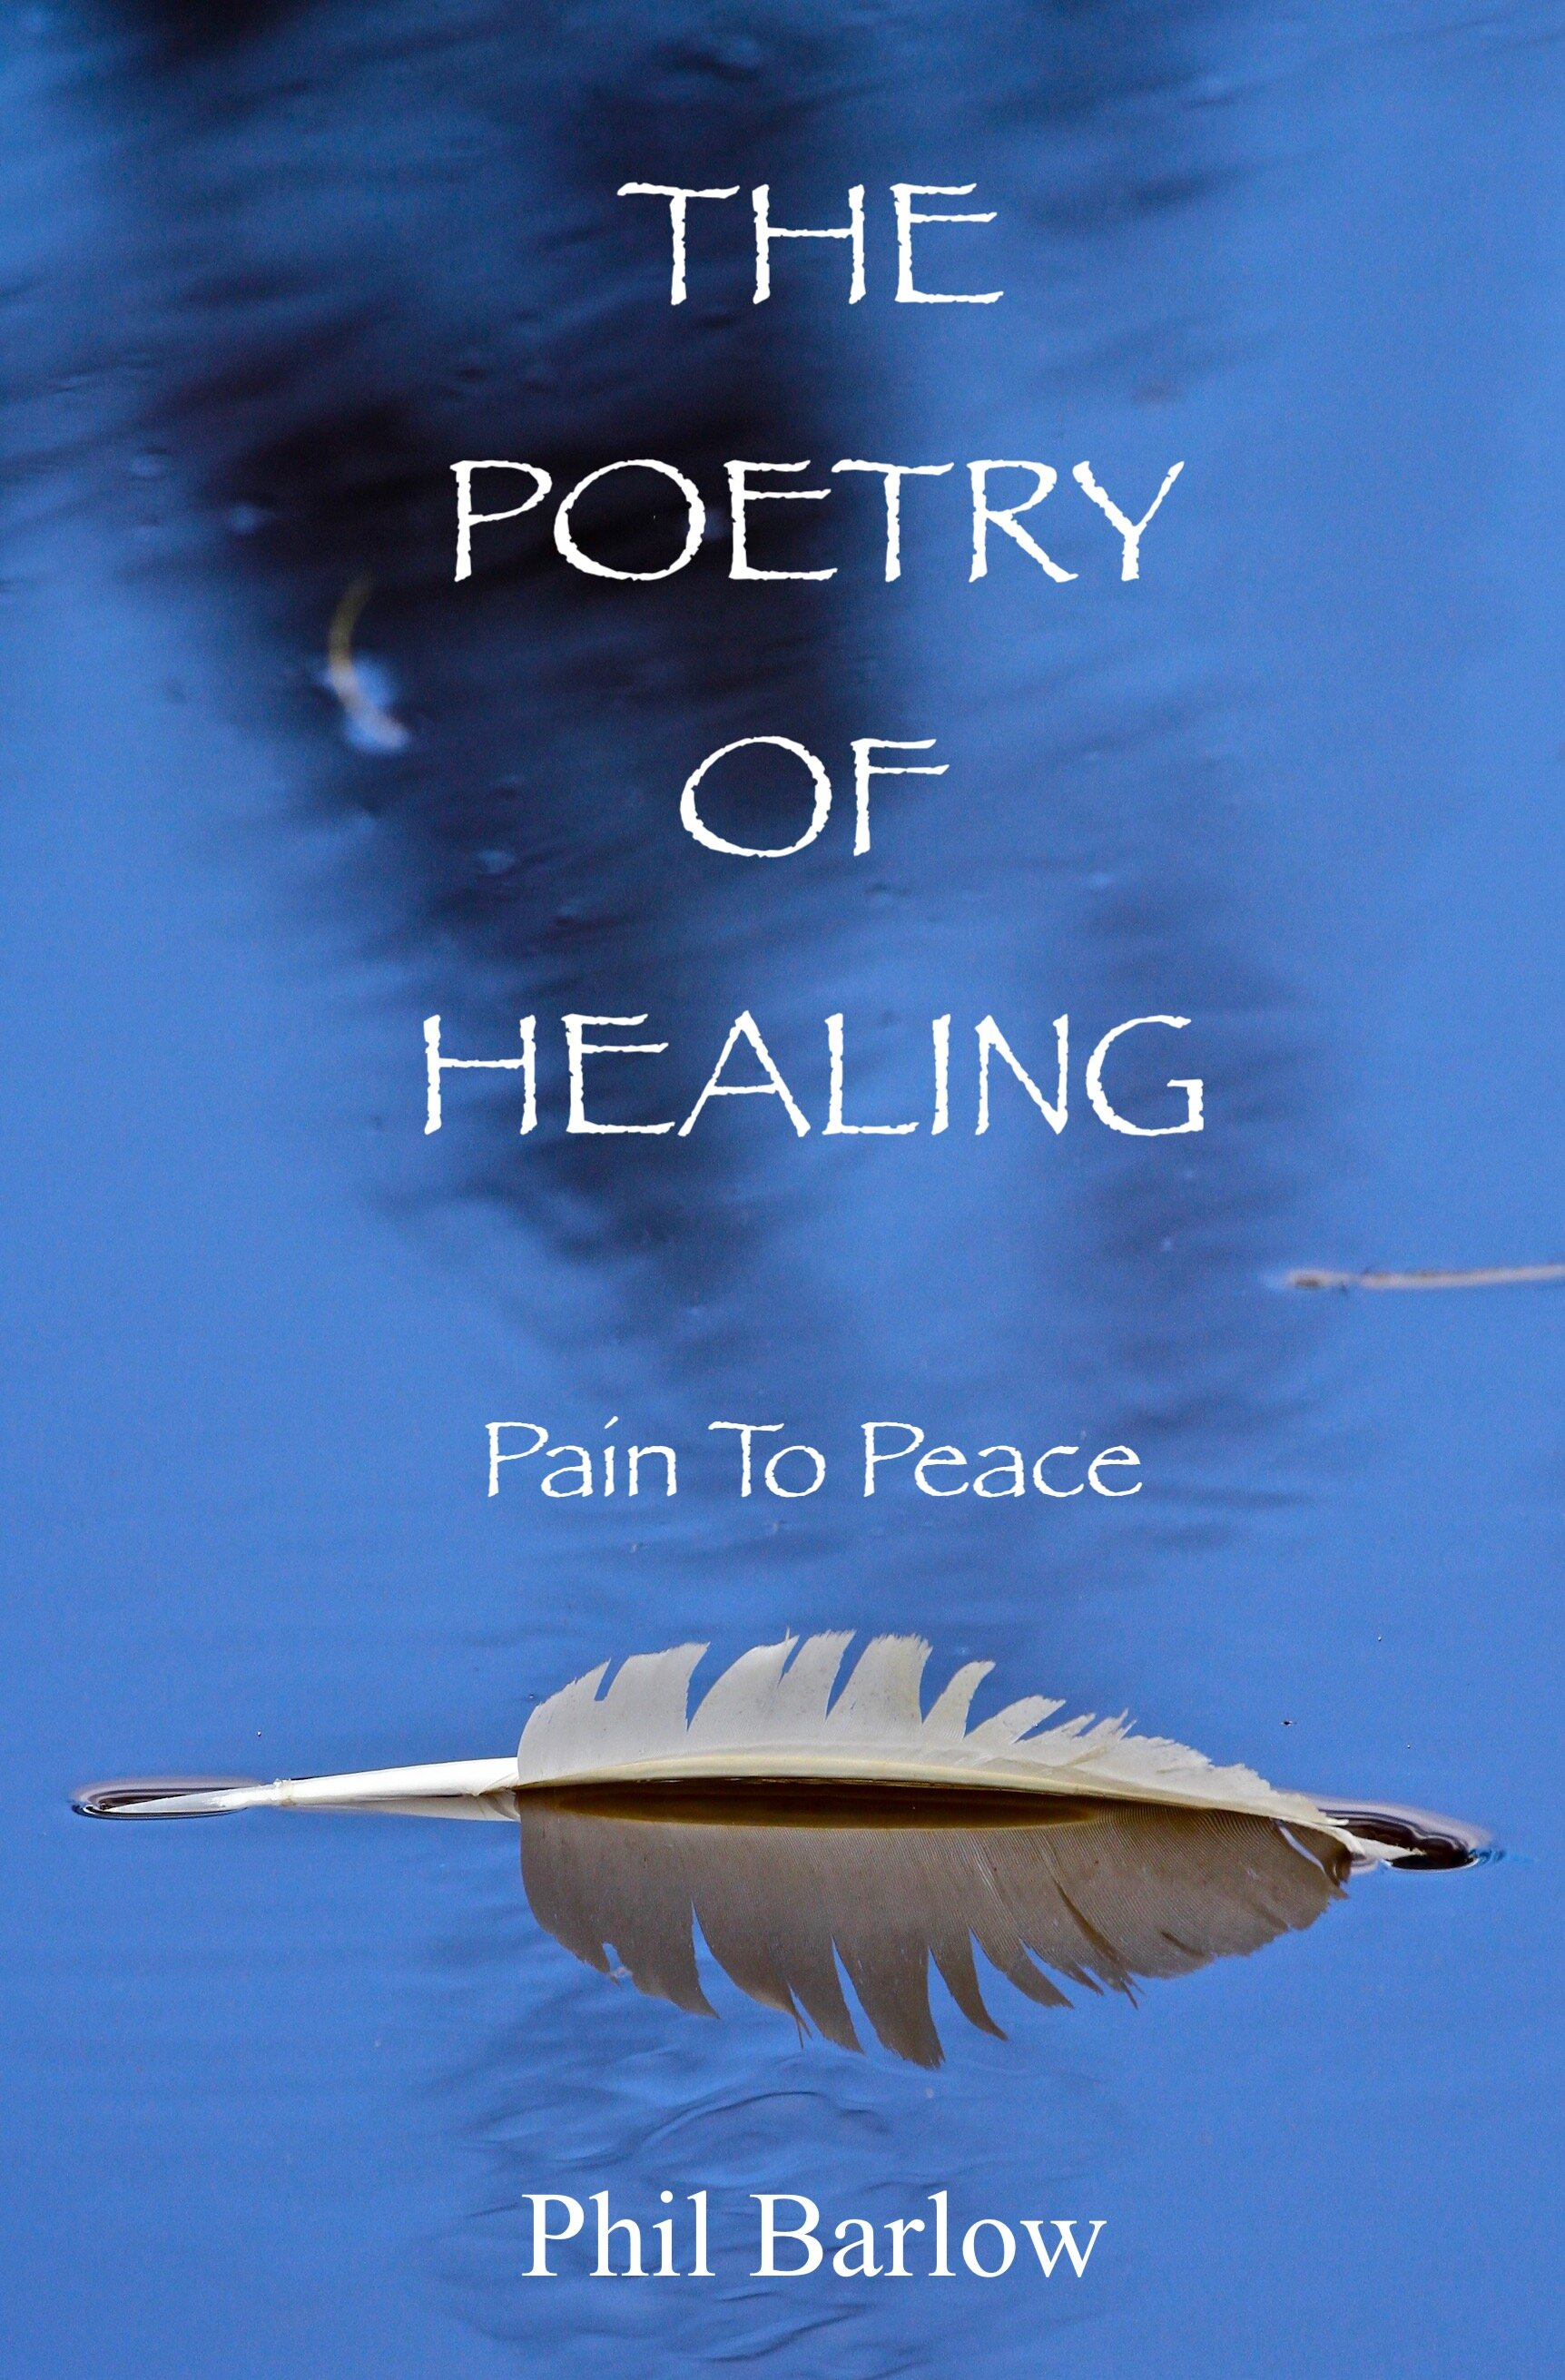 The Poetry Of HEaling - Cover Design idea .jpeg